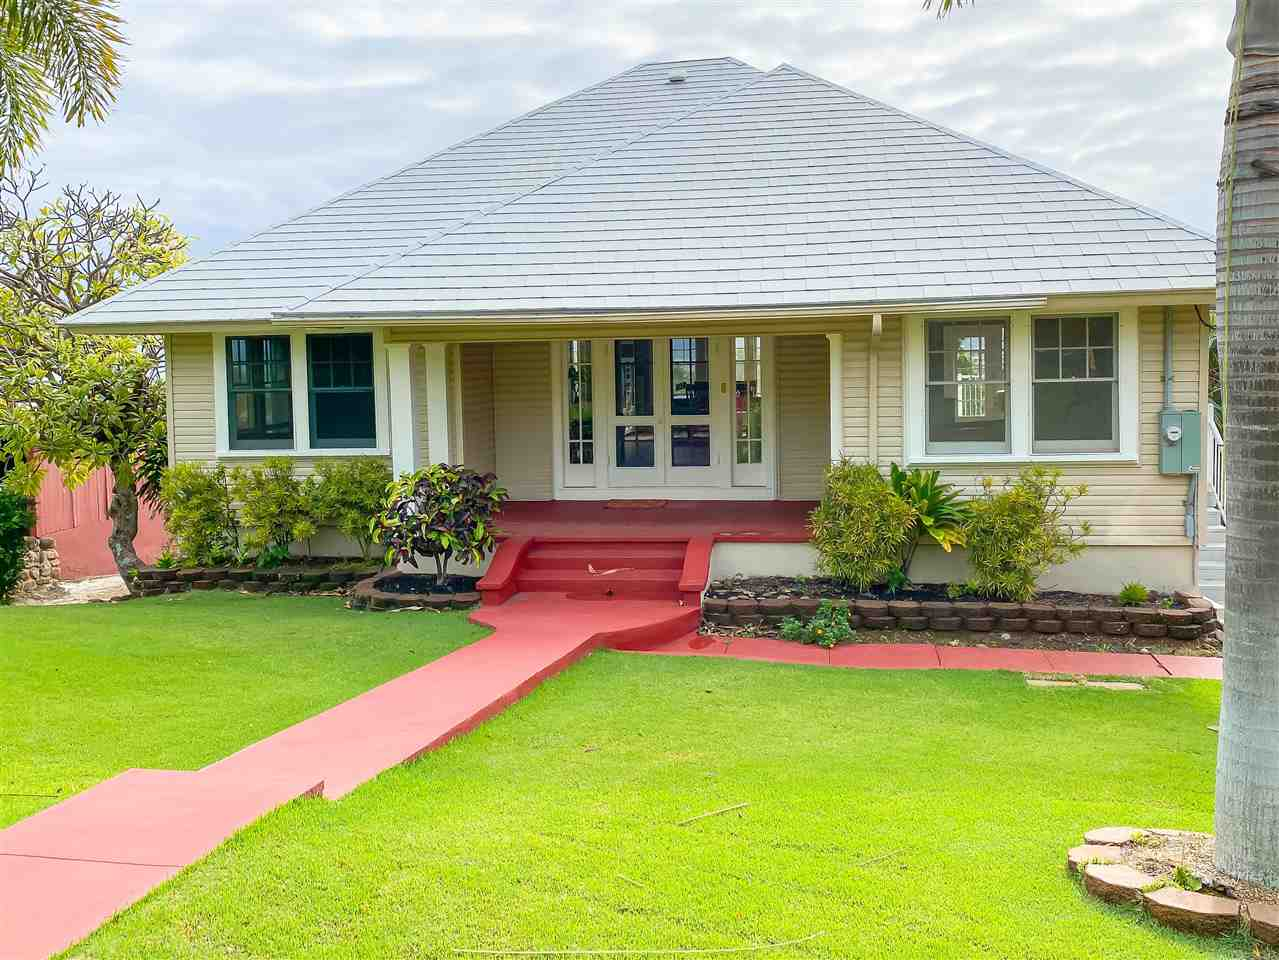 108 Naniloa Dr Property Photo - Wailuku, HI real estate listing